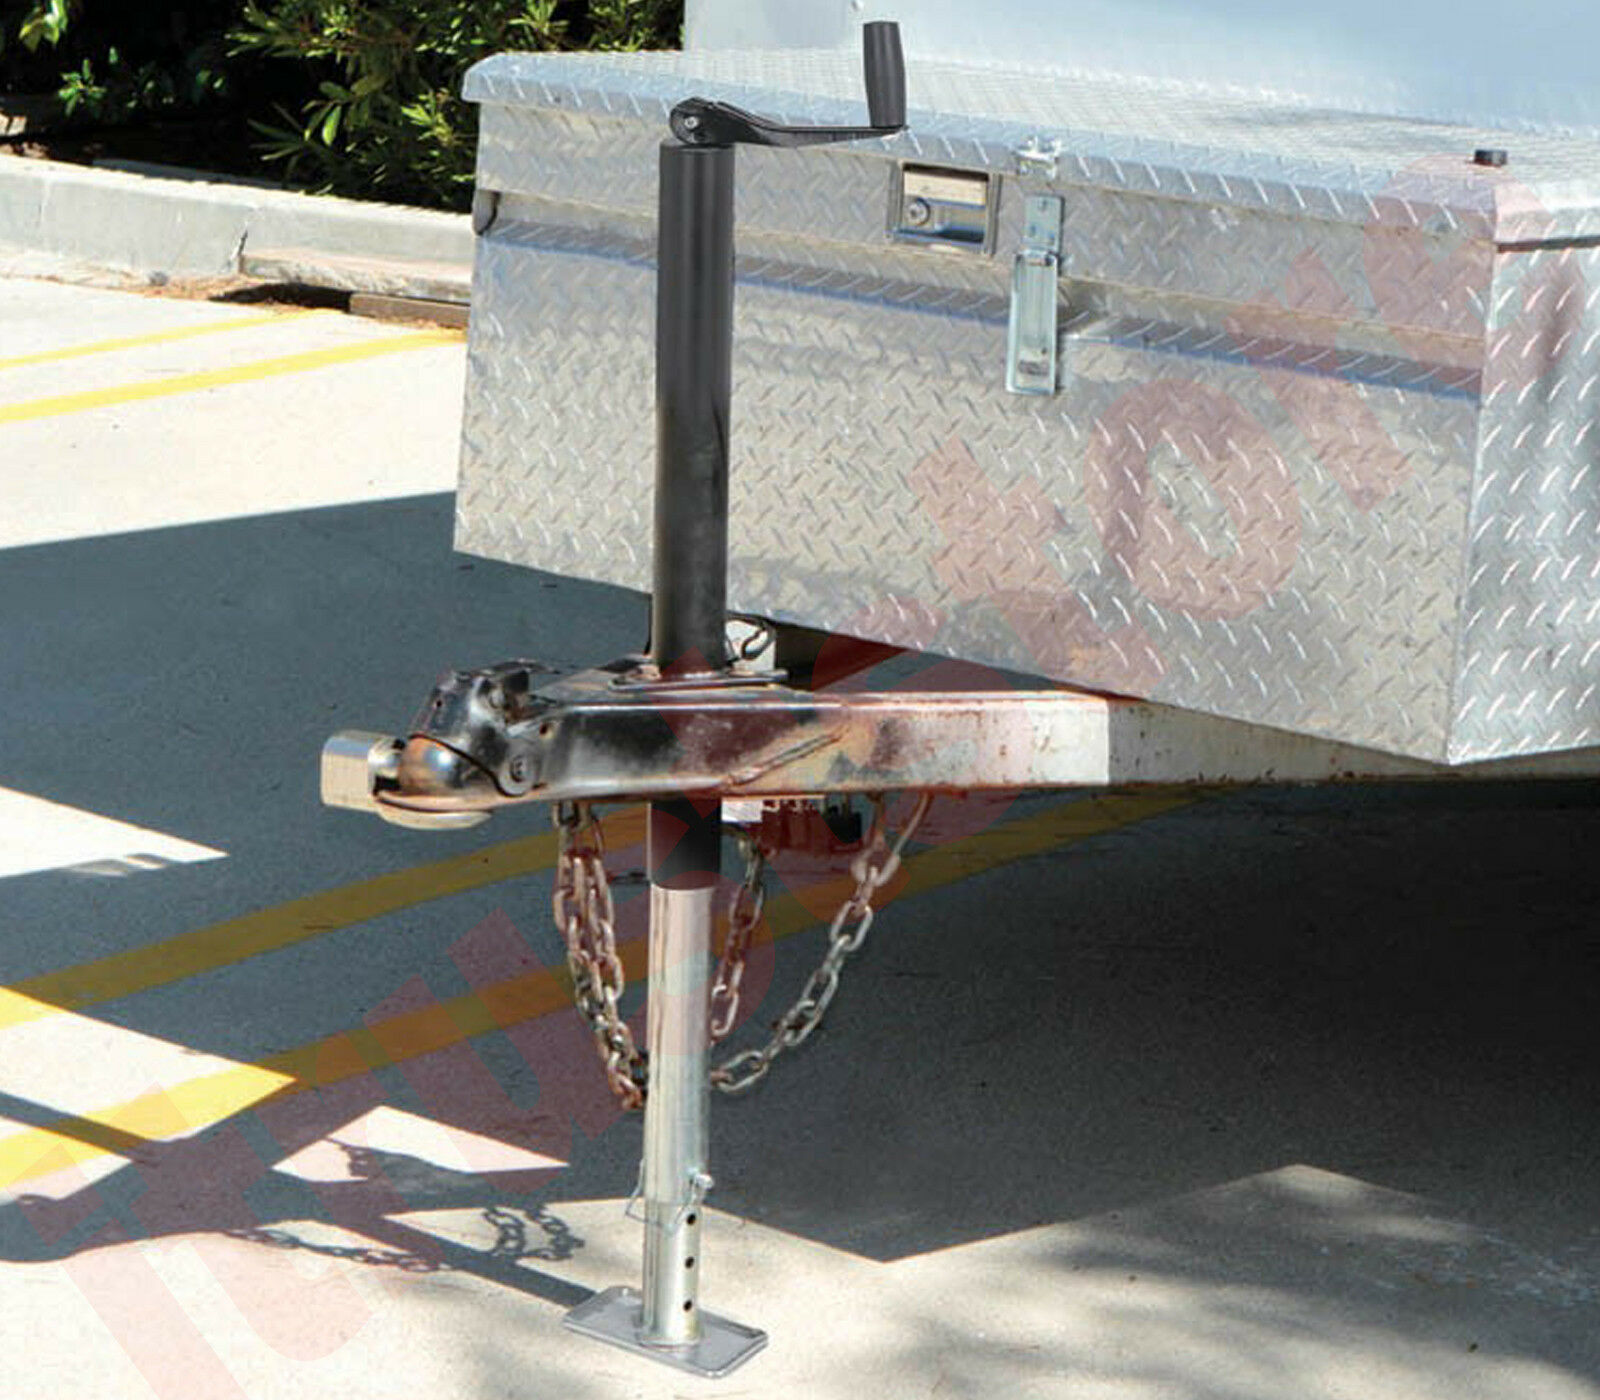 A FRAME TRAILER LIFT JACK TONGUE STAND DROP LEG BOLT OR WELD ON ...